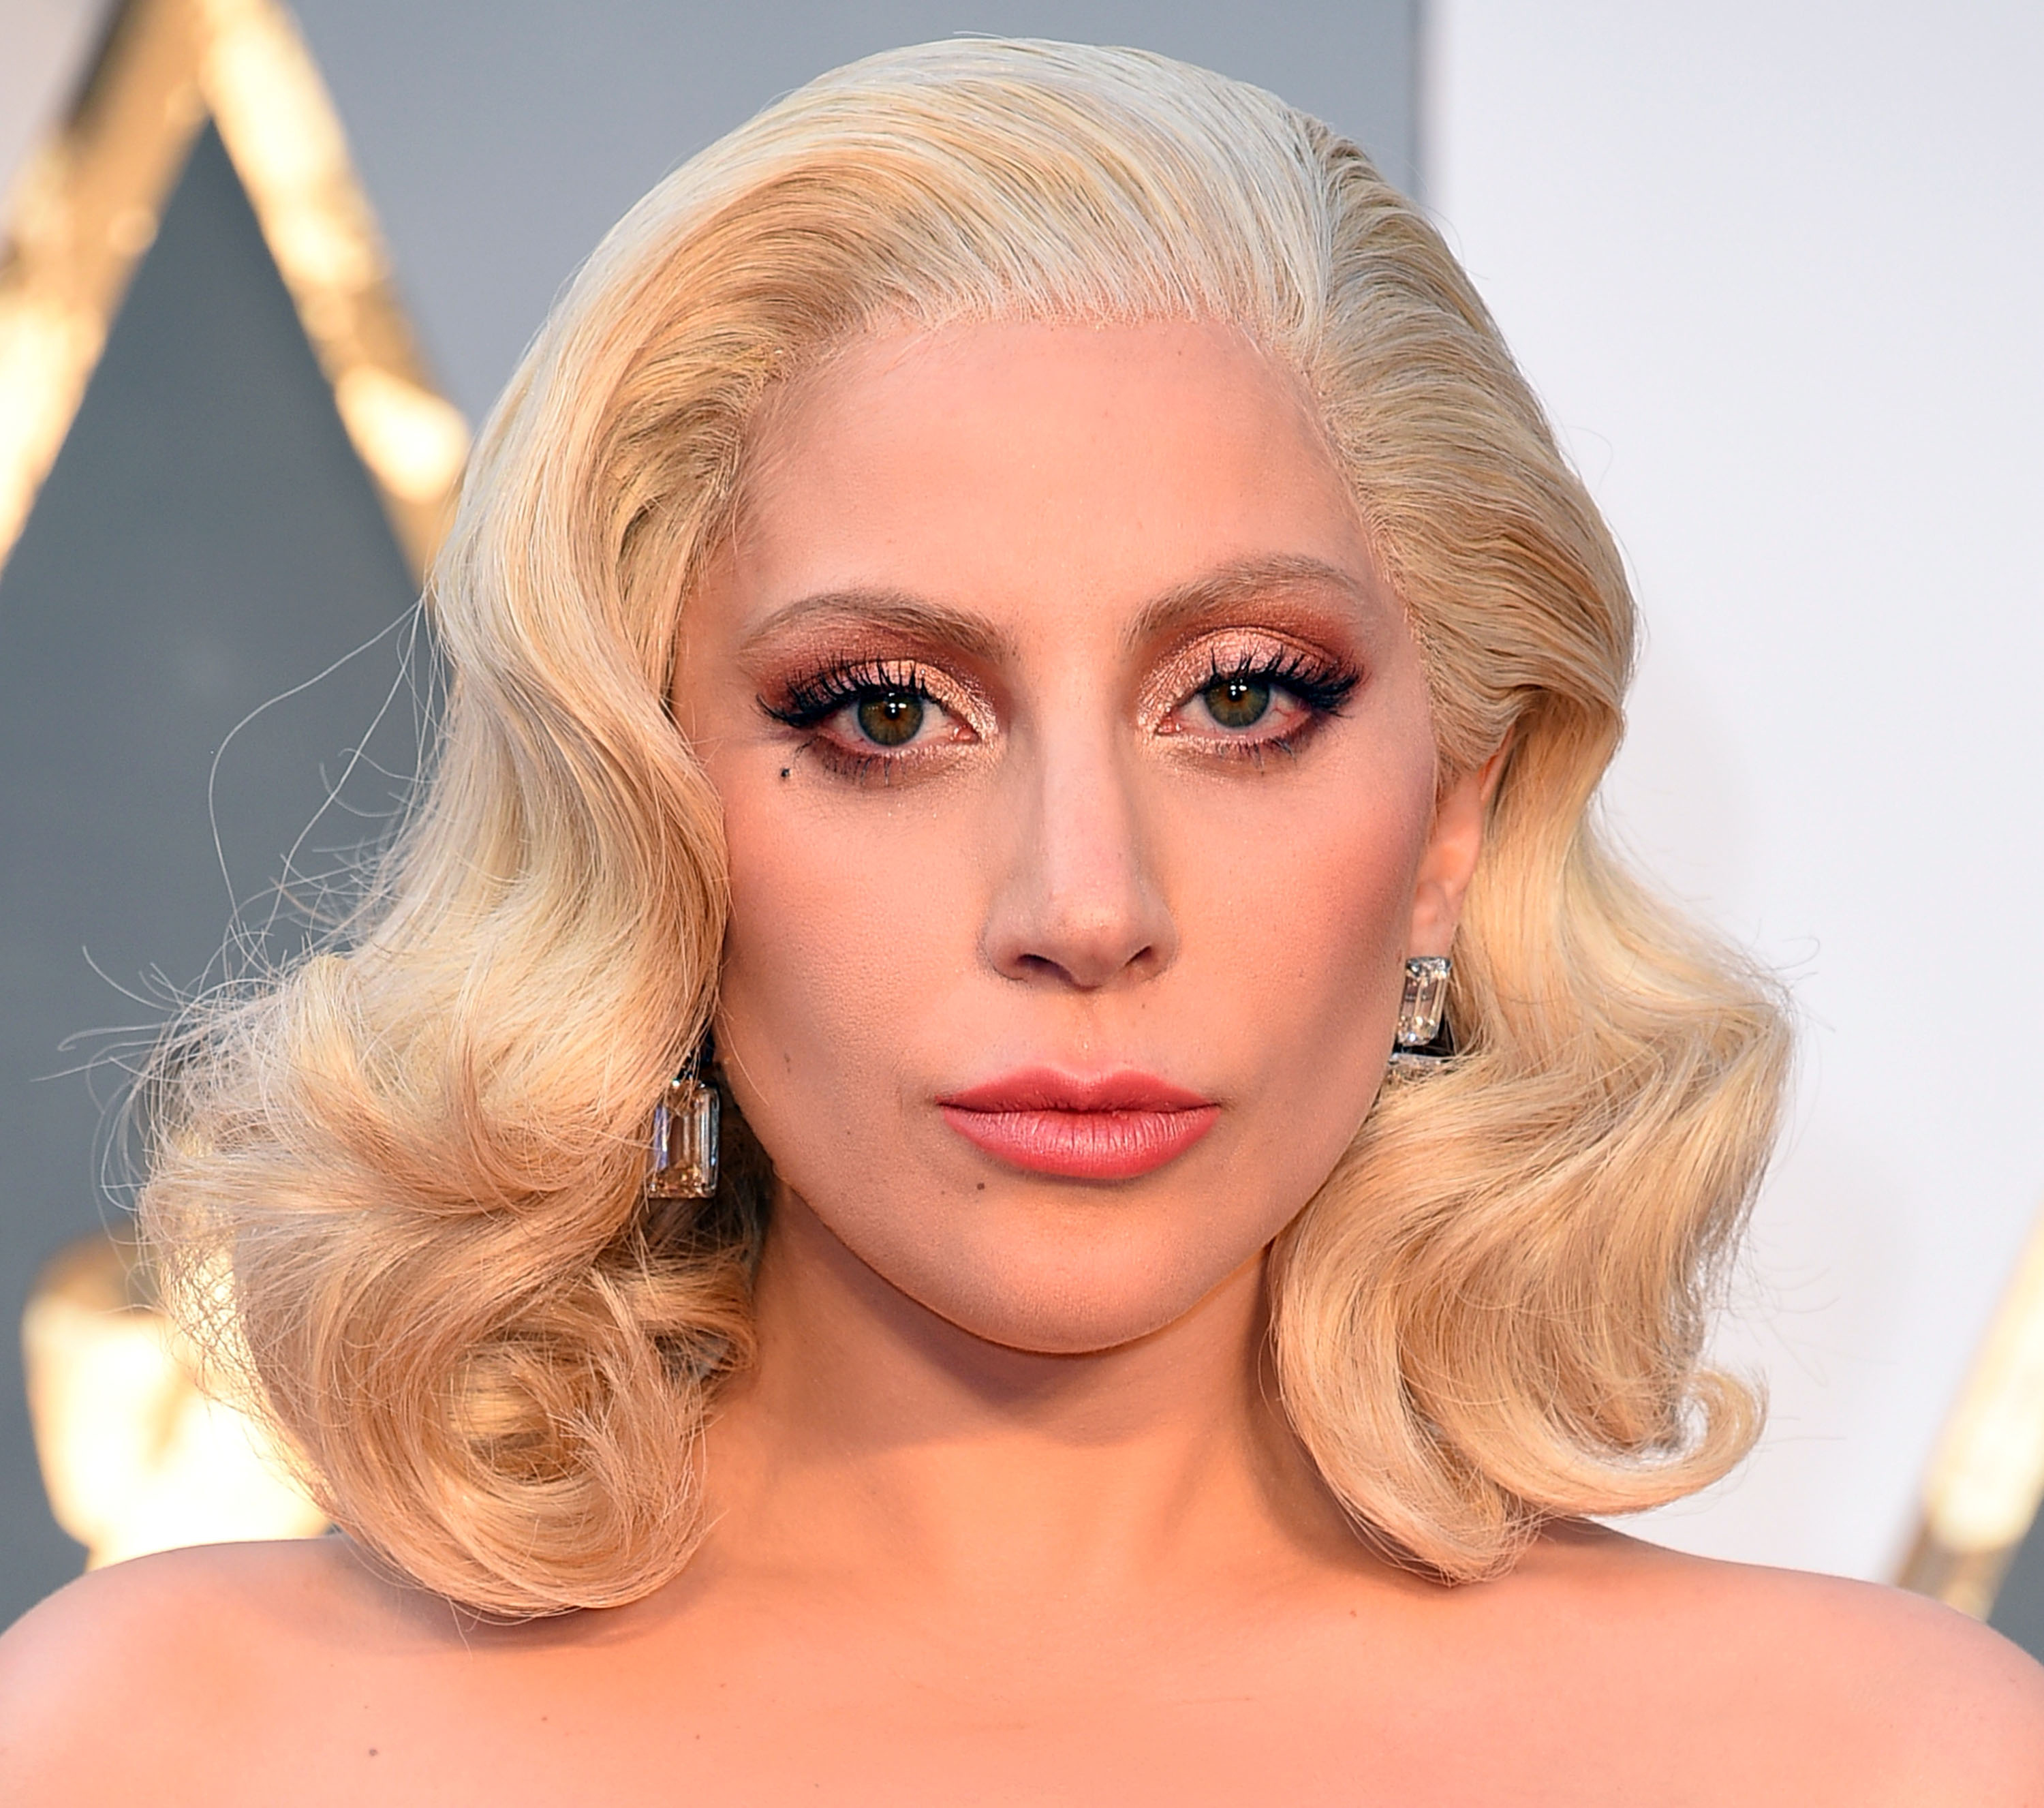 Lady Gaga arrives at the 88th Annual Academy Awards at Hollywood & Highland Center on February 28, 2016 in Hollywood, California.